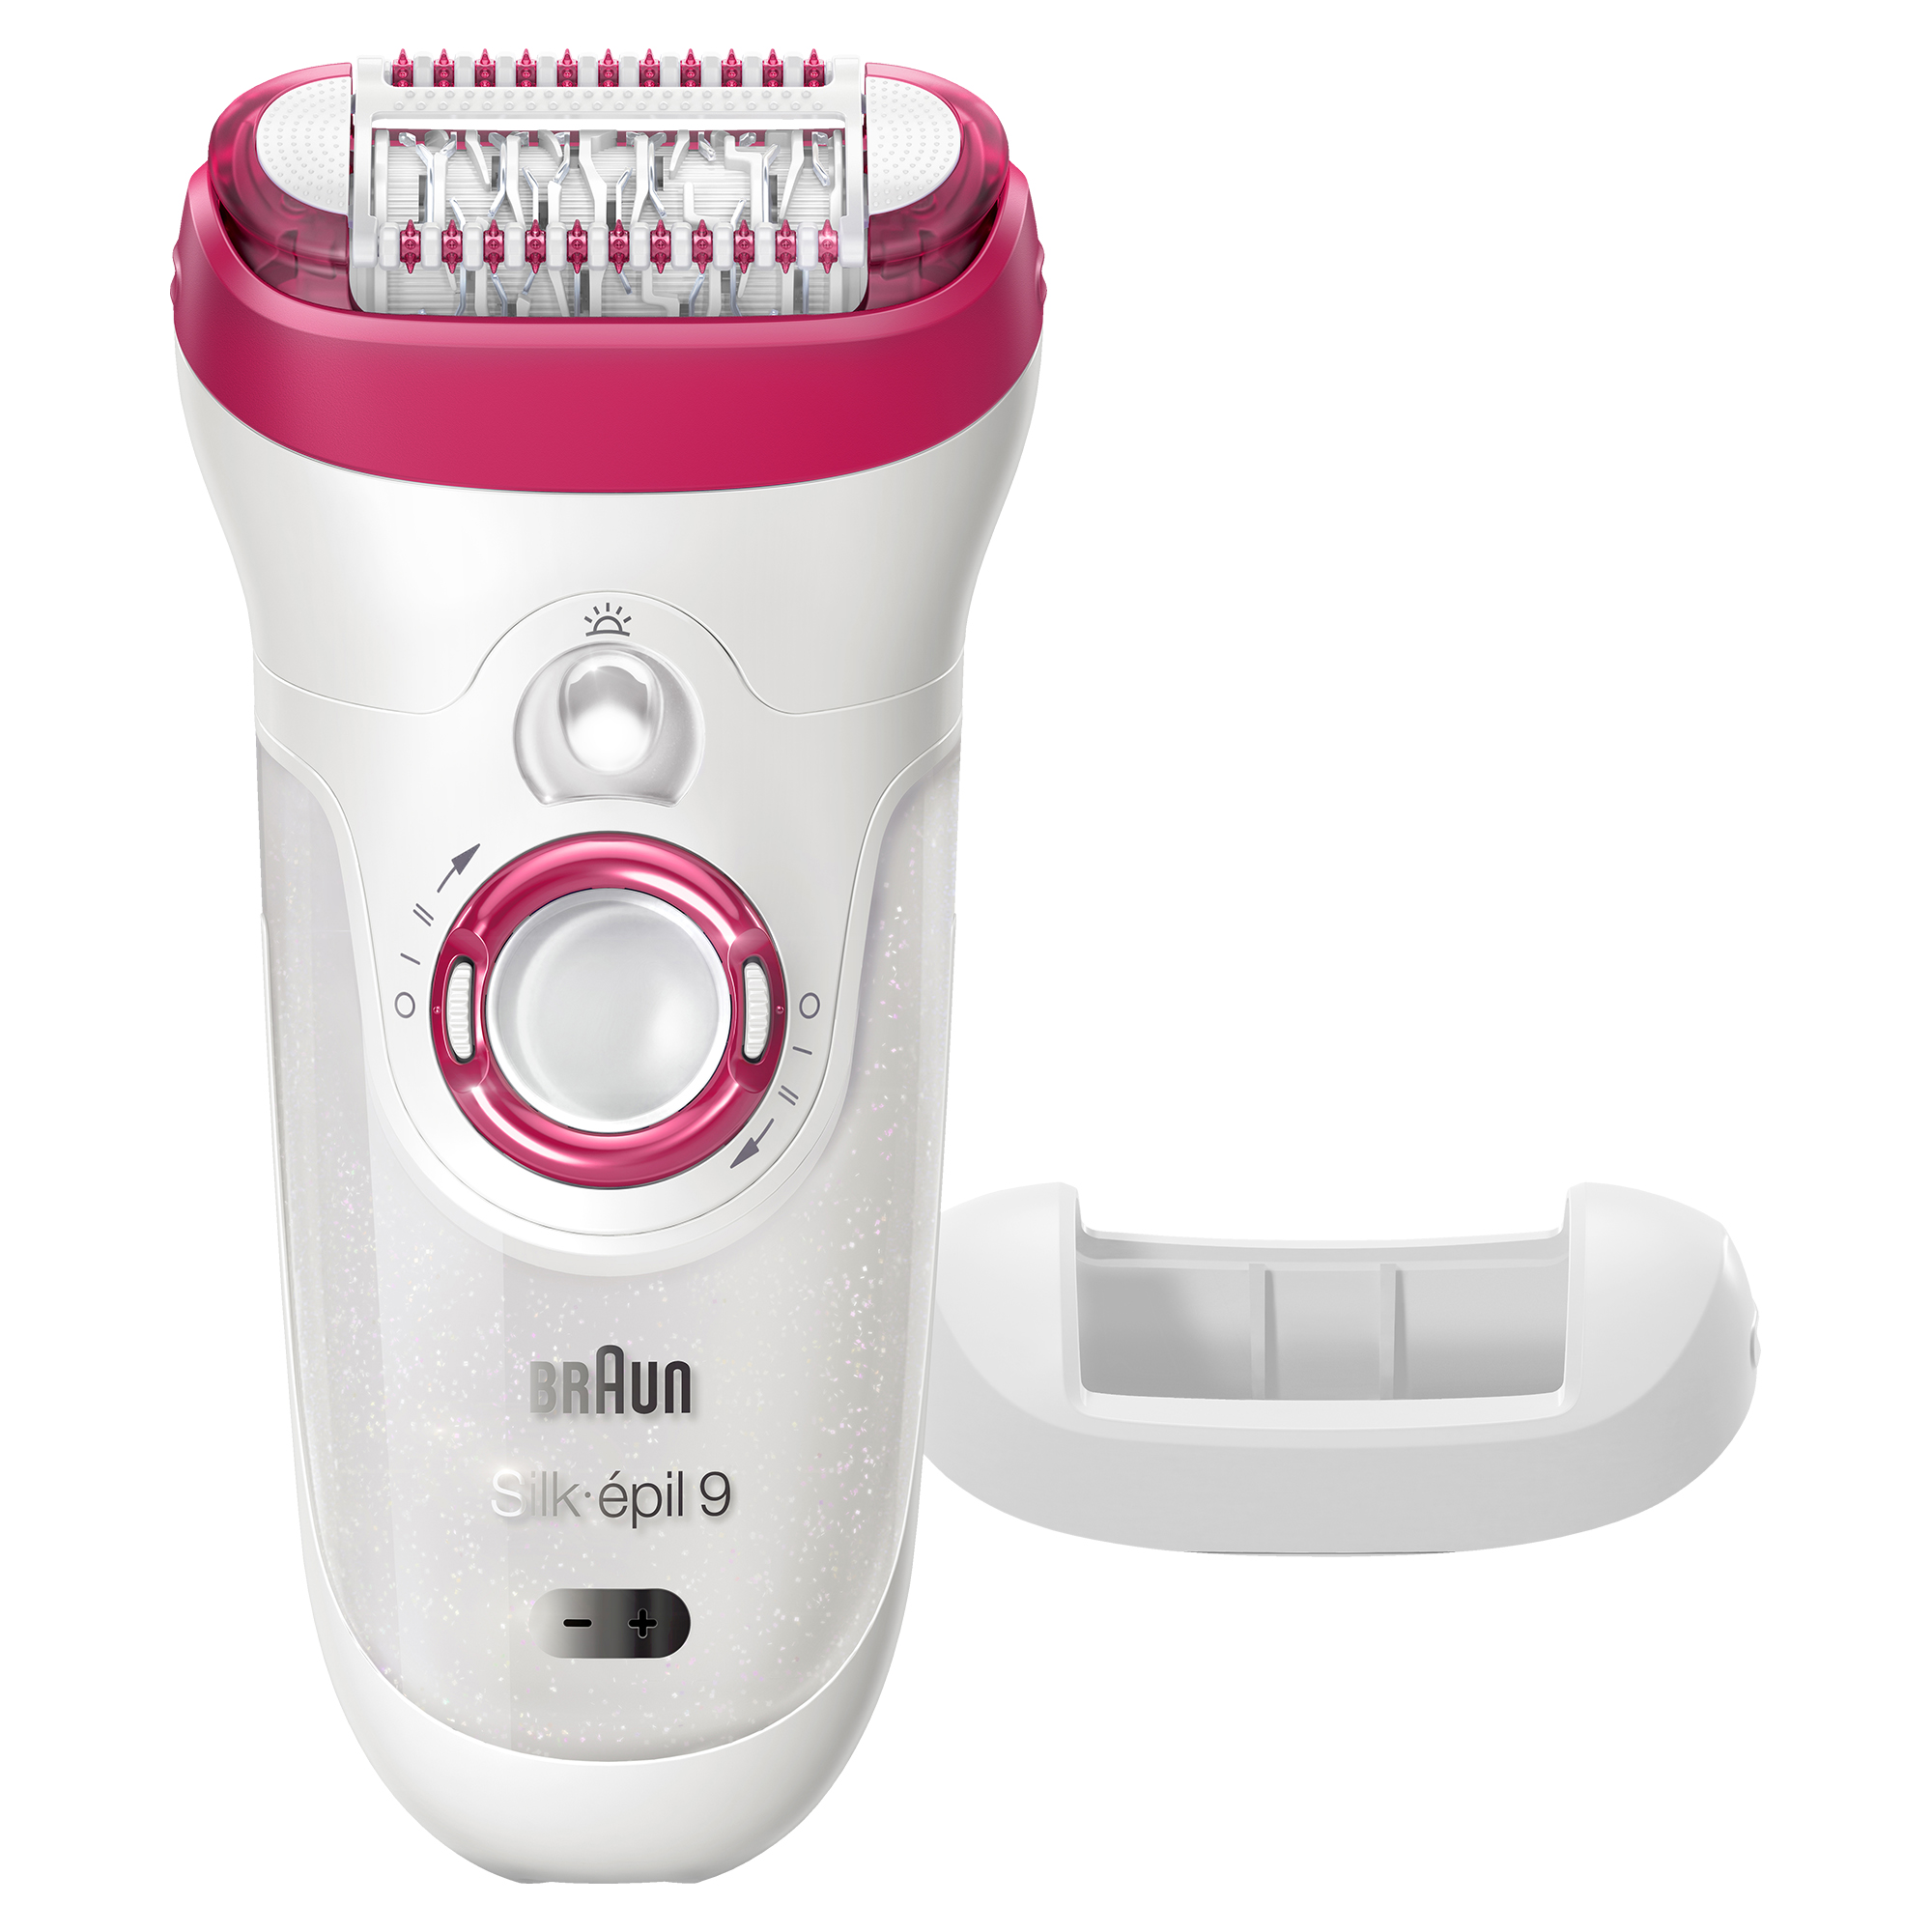 Braun Silk-epil 9 9-521 - Wet & Dry Cordless epilator with 2 extras ($30 Mail In Rebate Available)